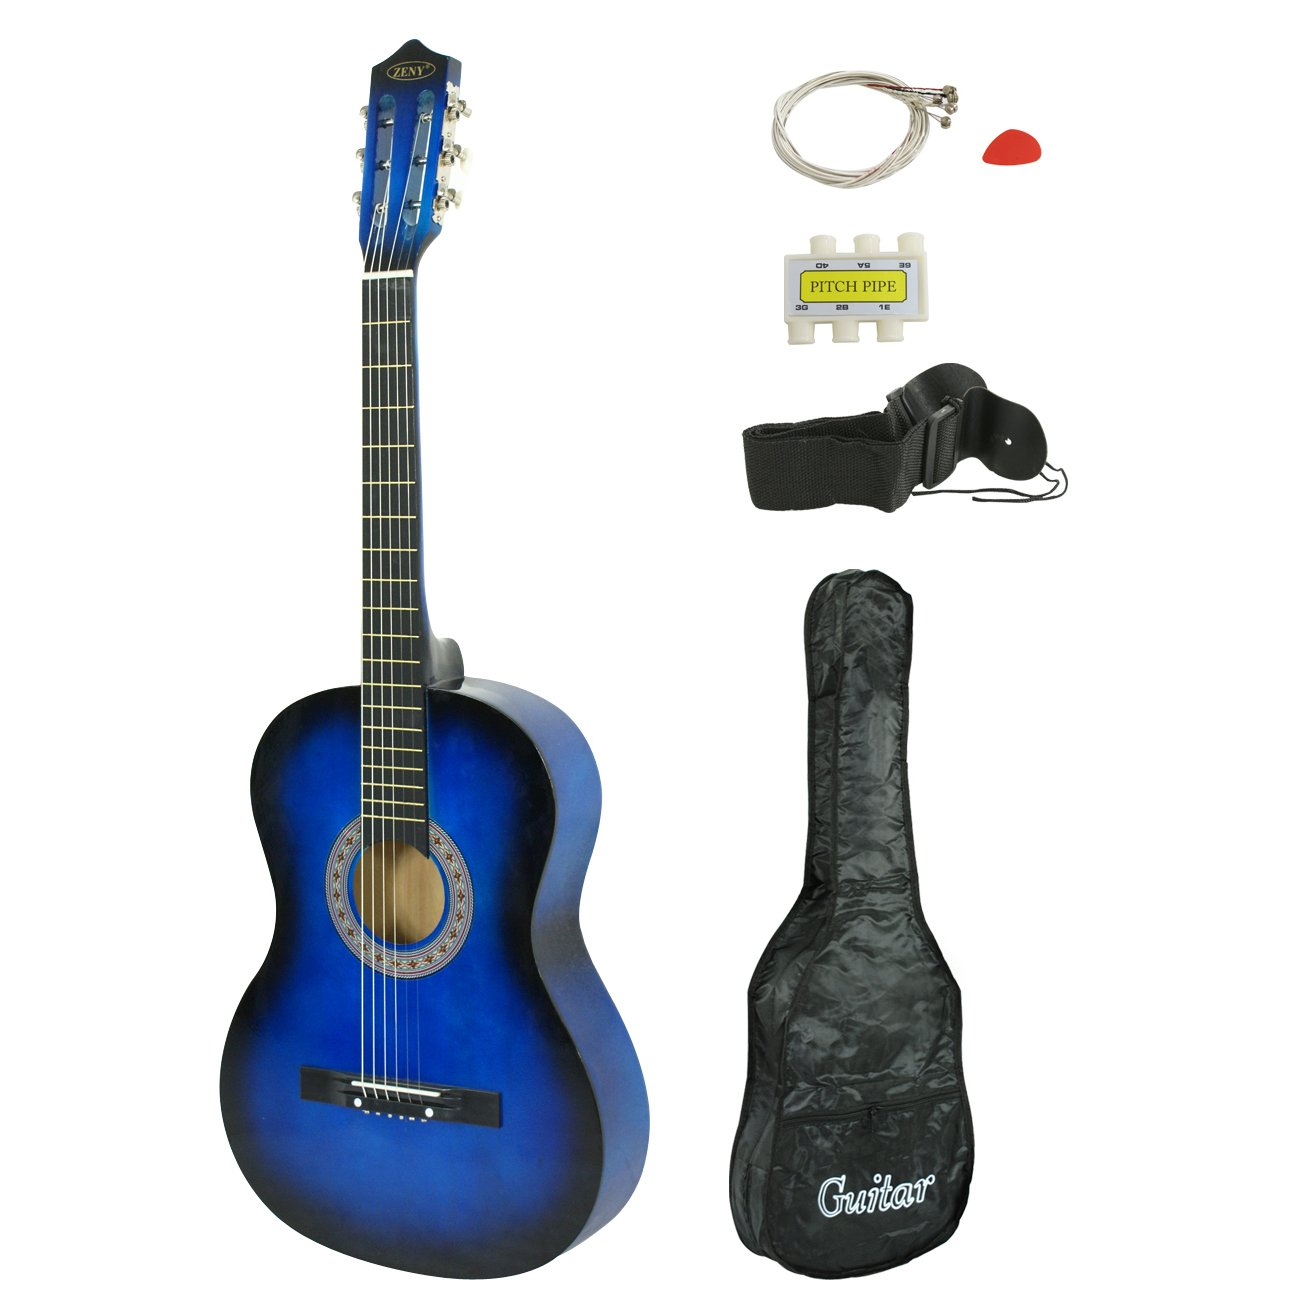 ZENY Beginners 38'' Acoustic Guitar Package Kit for Right-handed Starters Kids Music Lovers w/Solid Wood Body, Case, Strap, Digital E-Tuner, and Pick, Blue